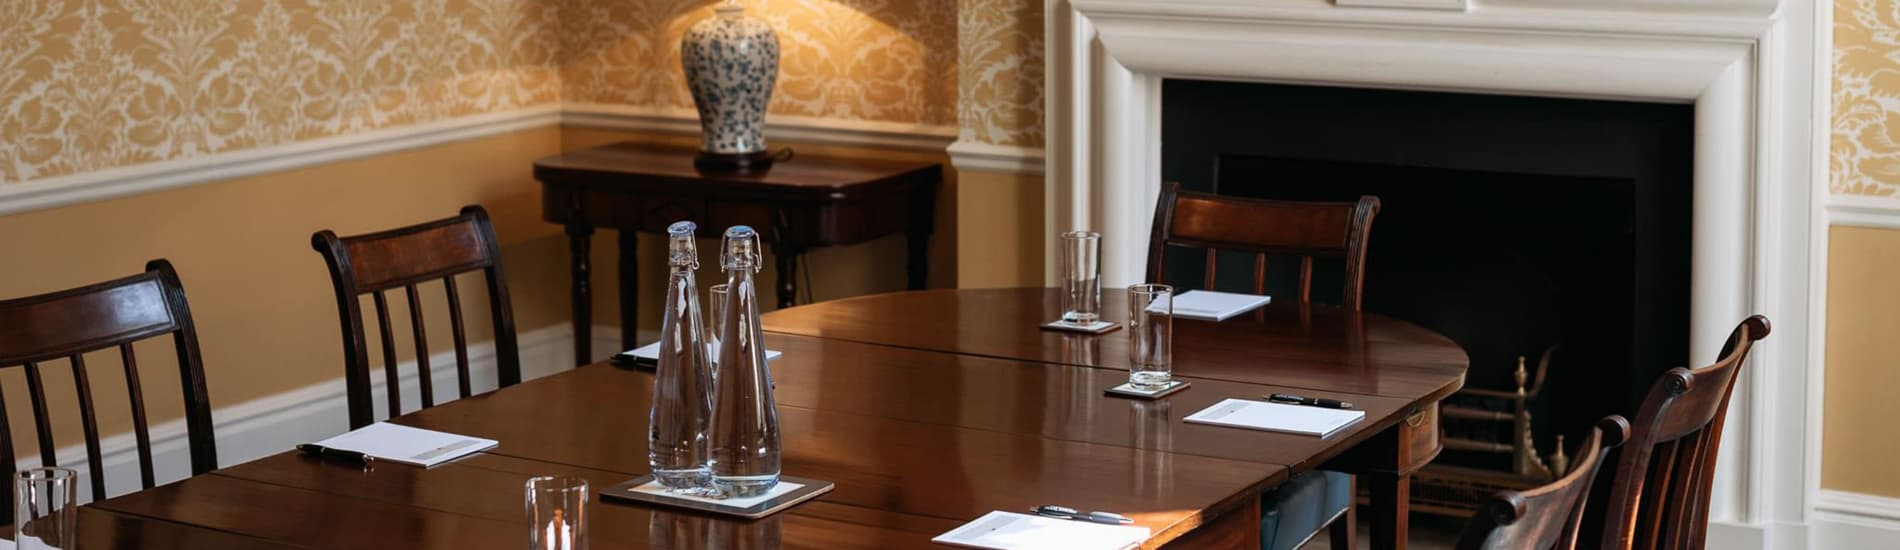 Merchant Taylors Events, Conferences, Banqueting, Weddings, Food & Drink